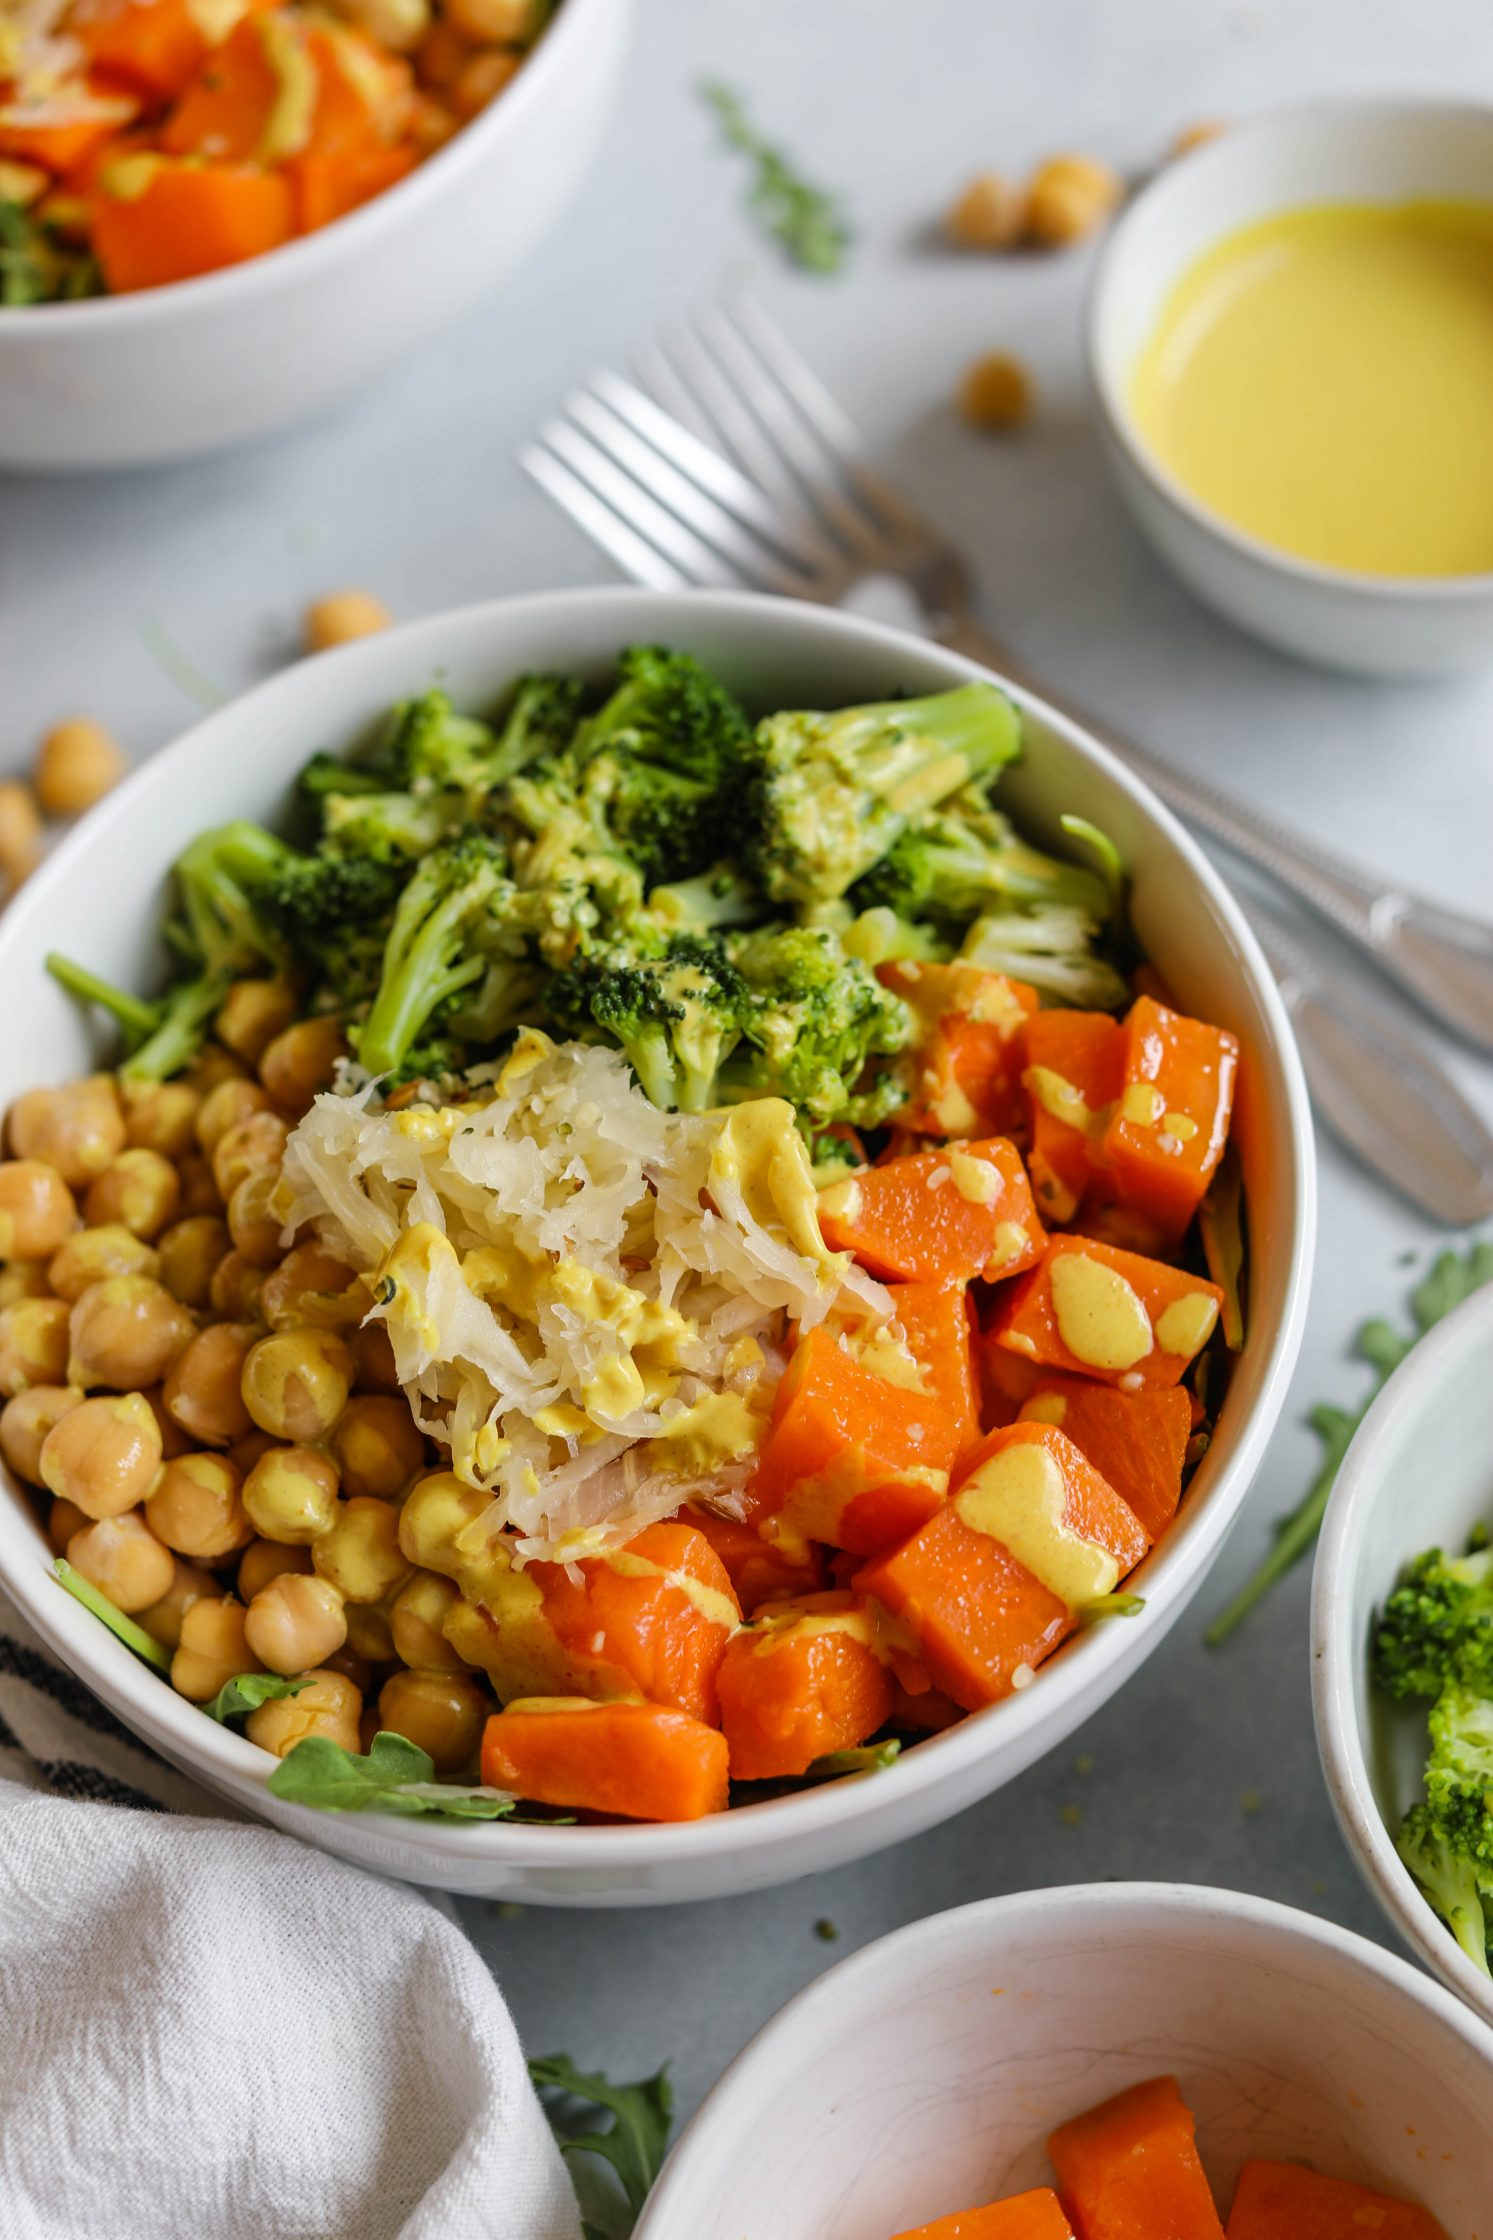 Chickpea Meal Prep Bowl with Turmeric Tahini Dressing by Flora & Vino